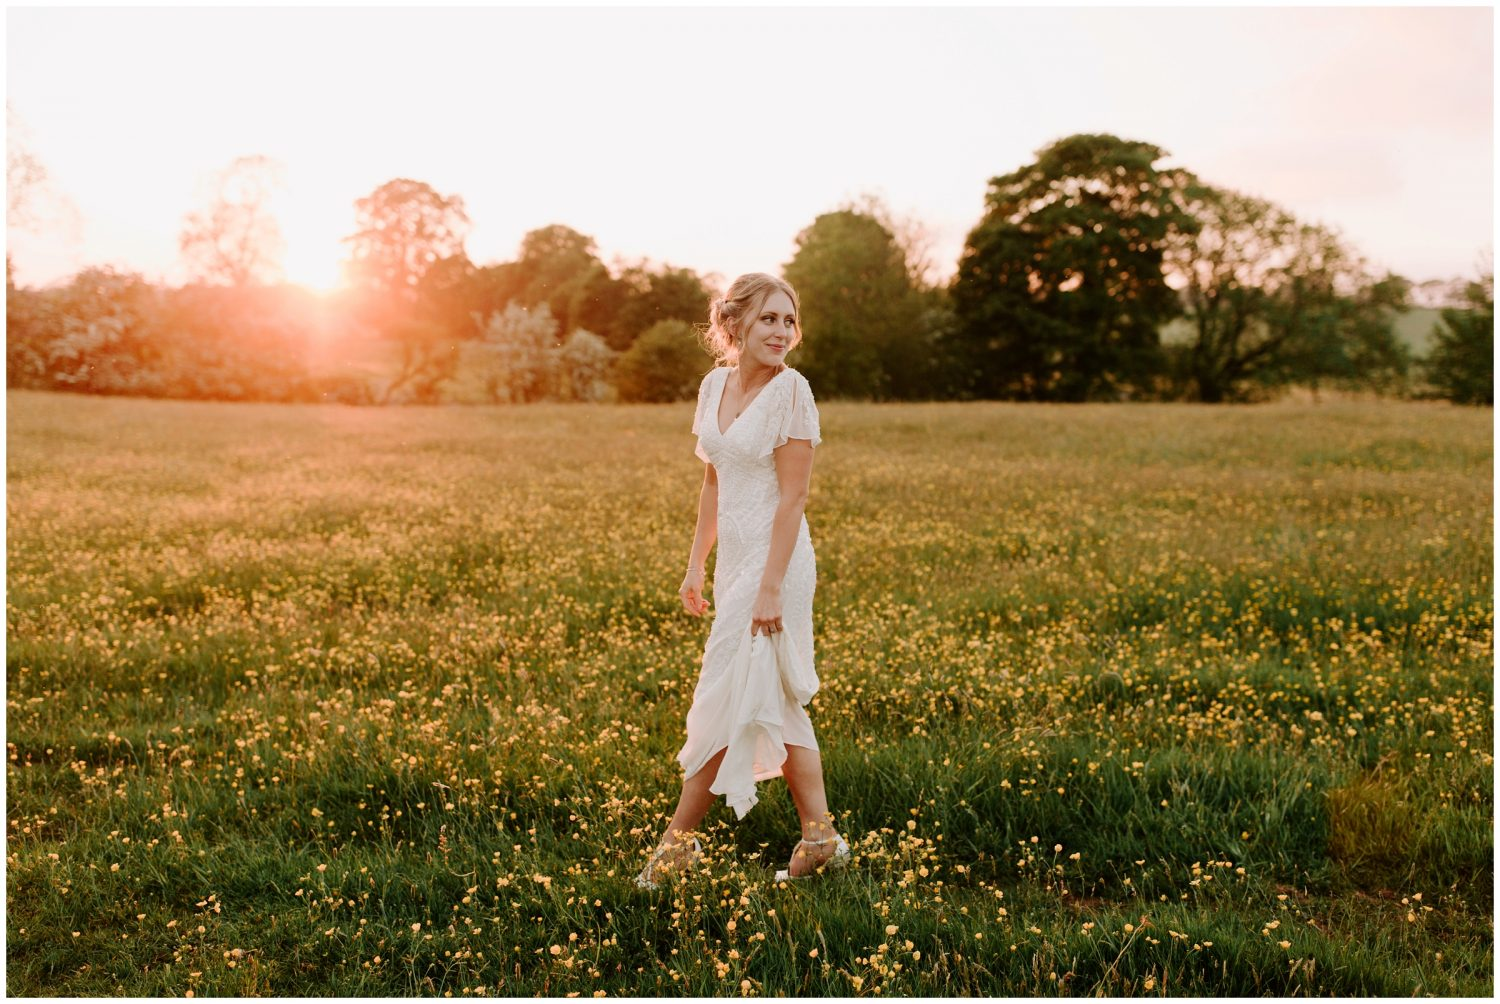 bride walking in field of flowers